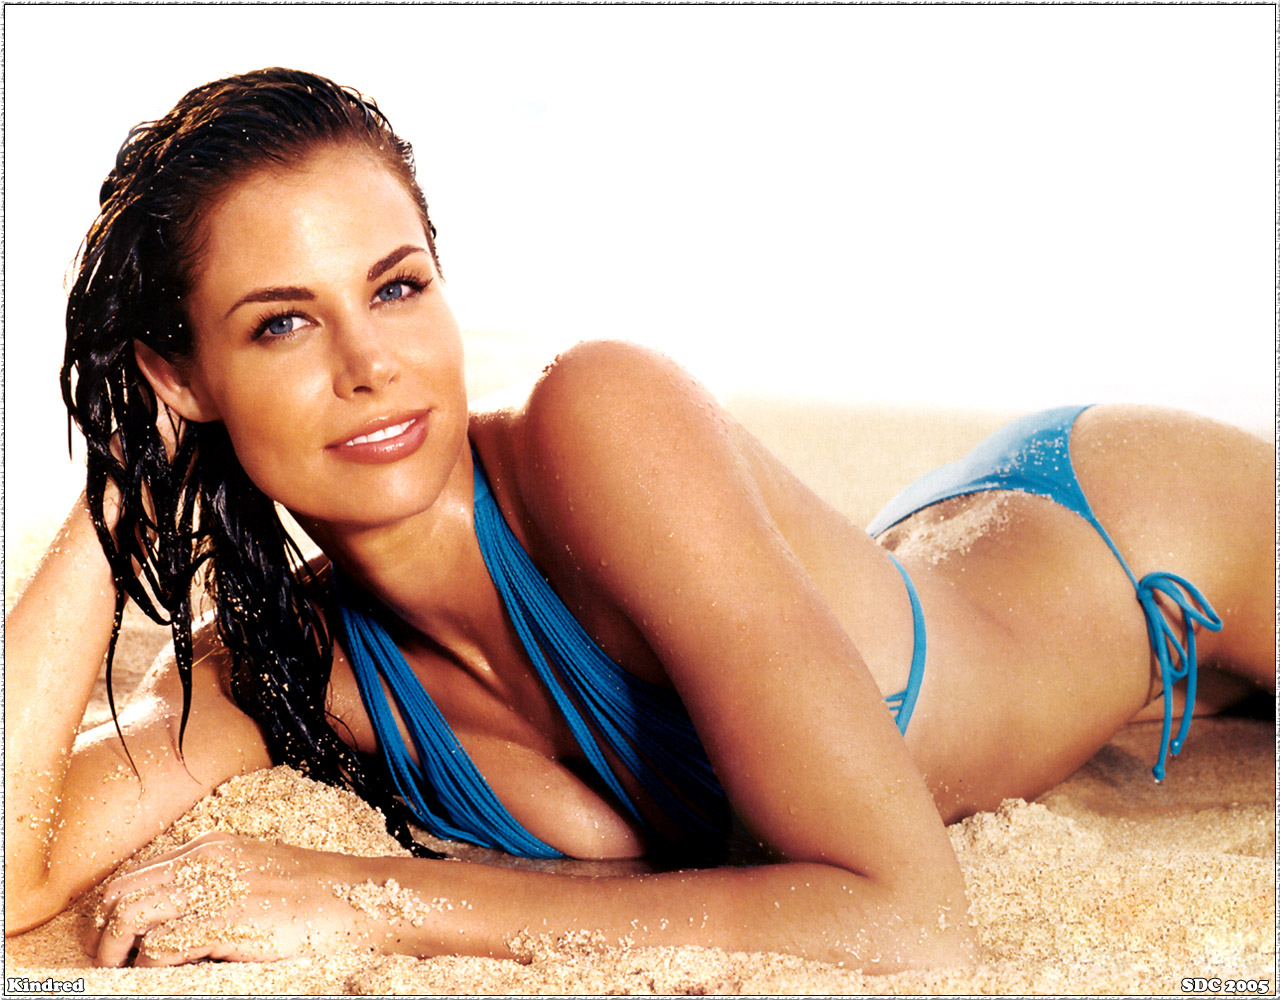 Hot! brooke burns topless